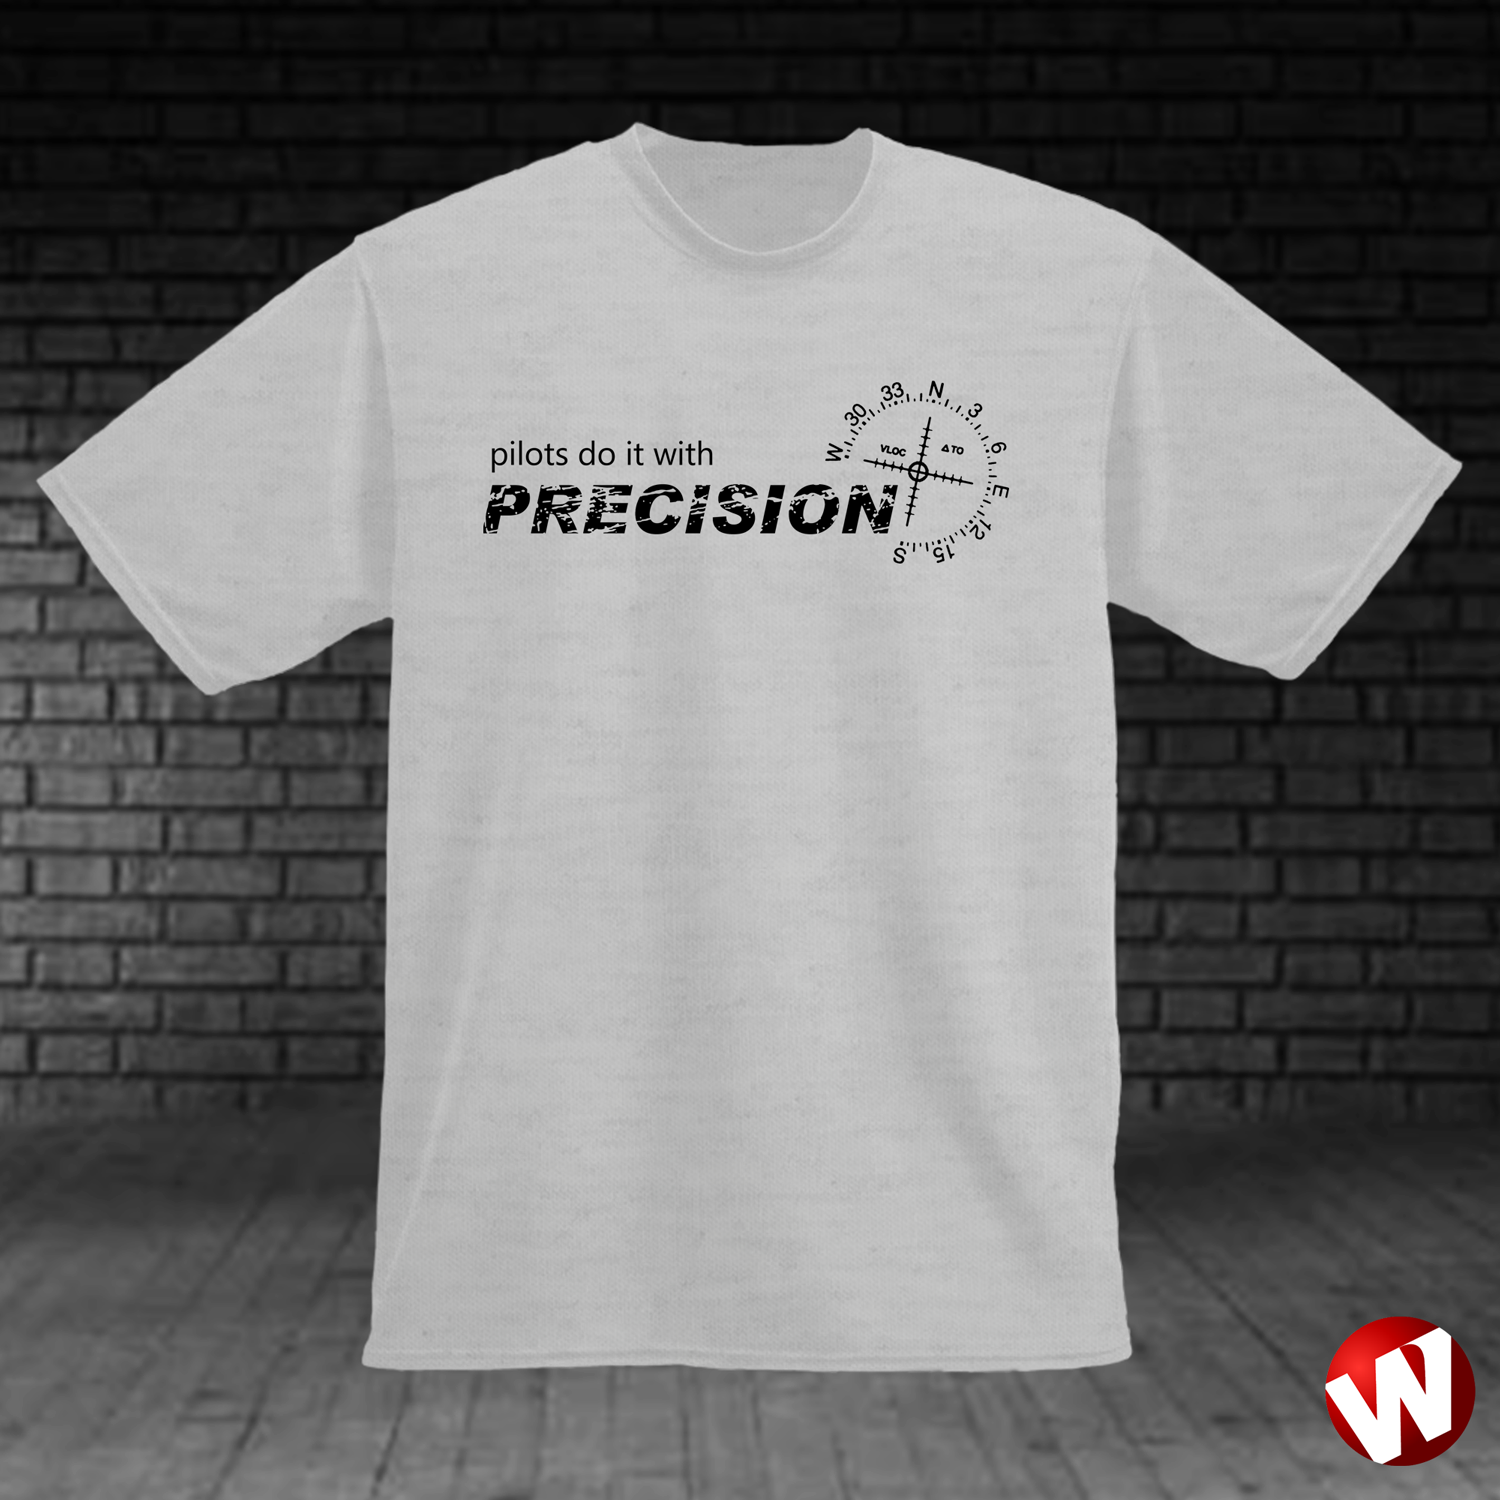 Pilots Do It With Precision (black ink, ash t-shirt). Windtee aviation t-shirts and custom graphics.